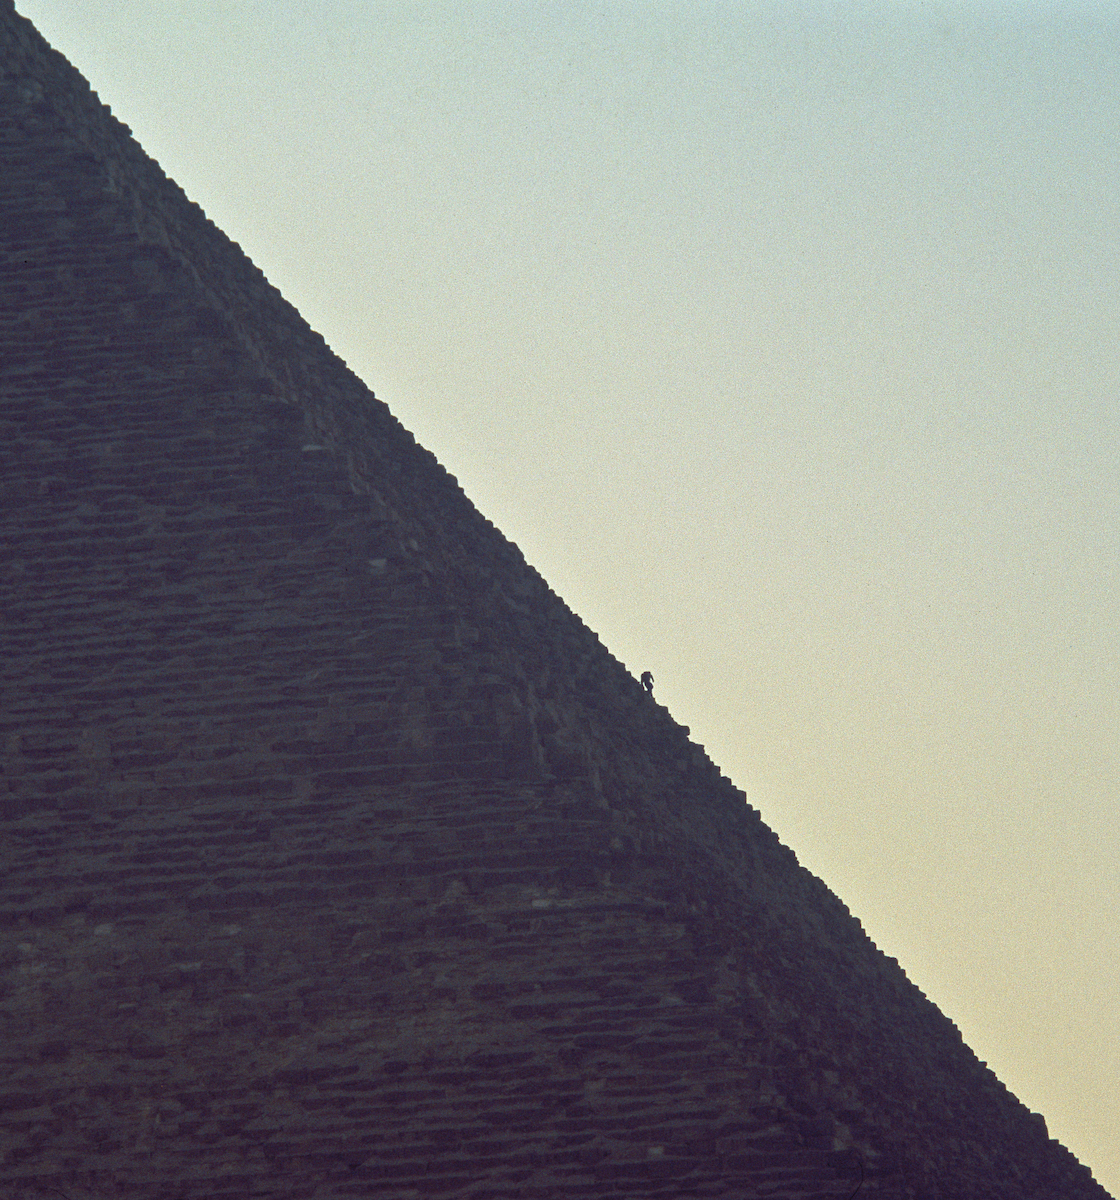 Egypt, Pyramid, Architecture, Giza,